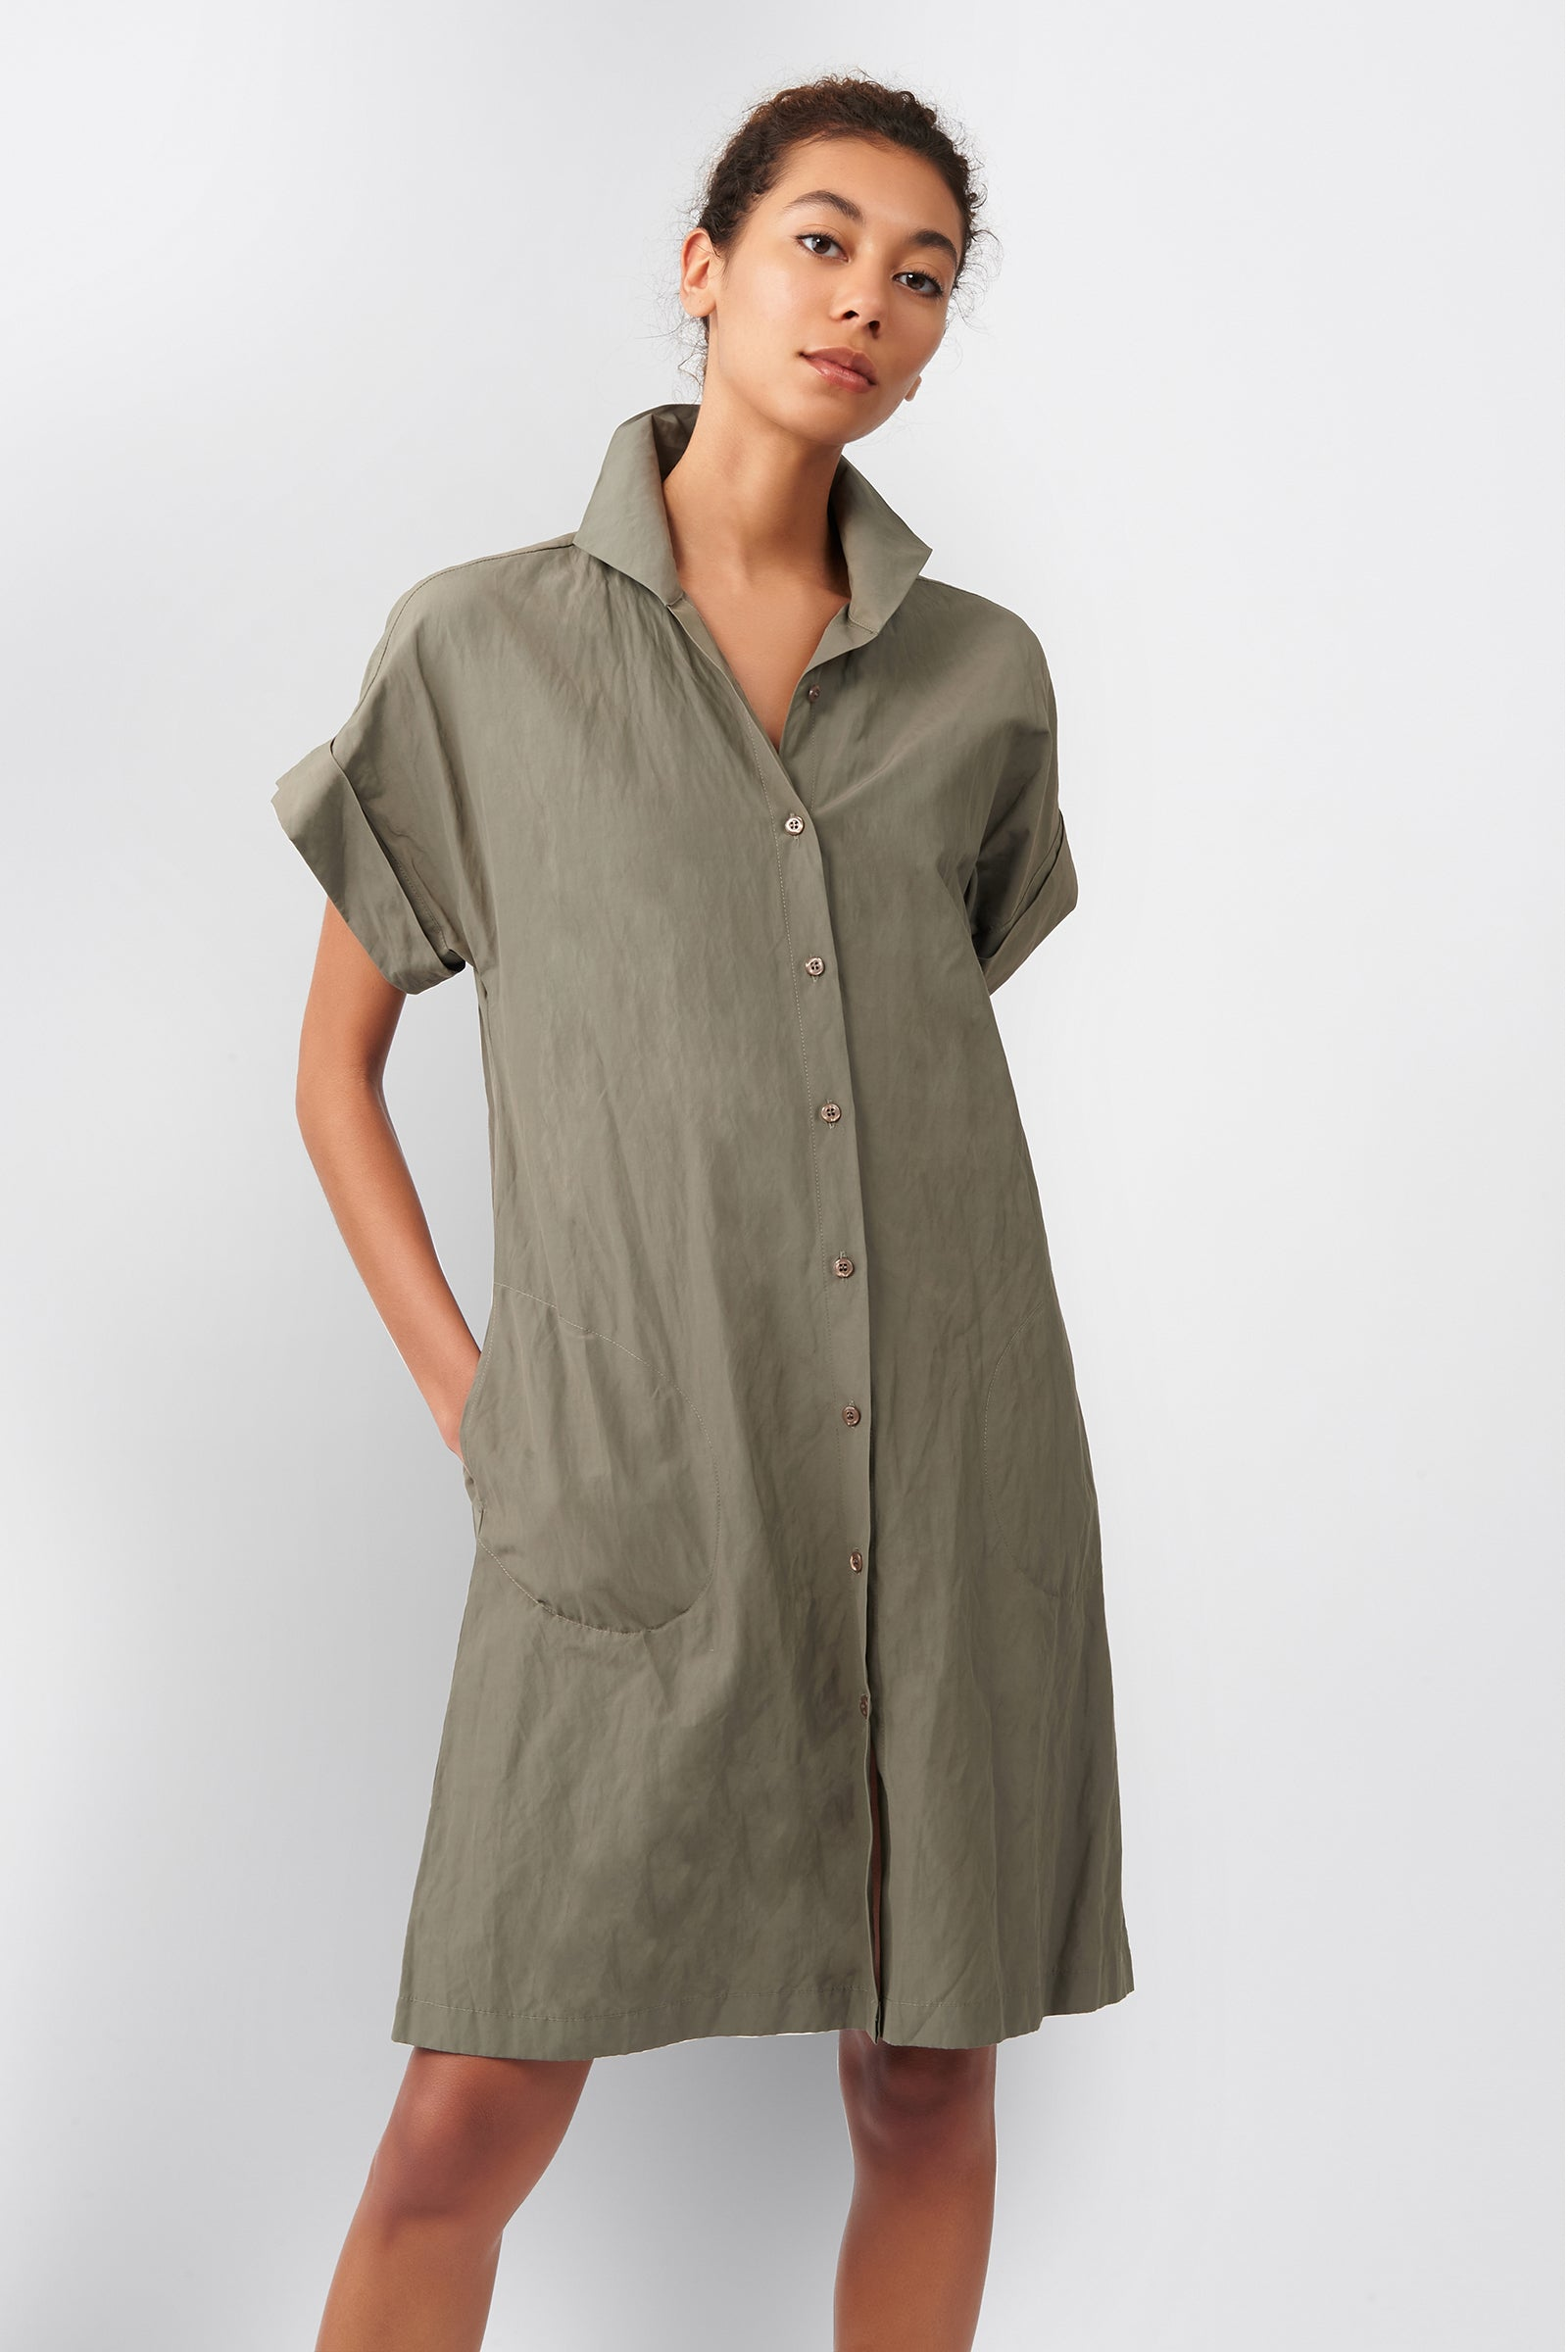 Kal Rieman Kimono Dress in Olive on Model Front View